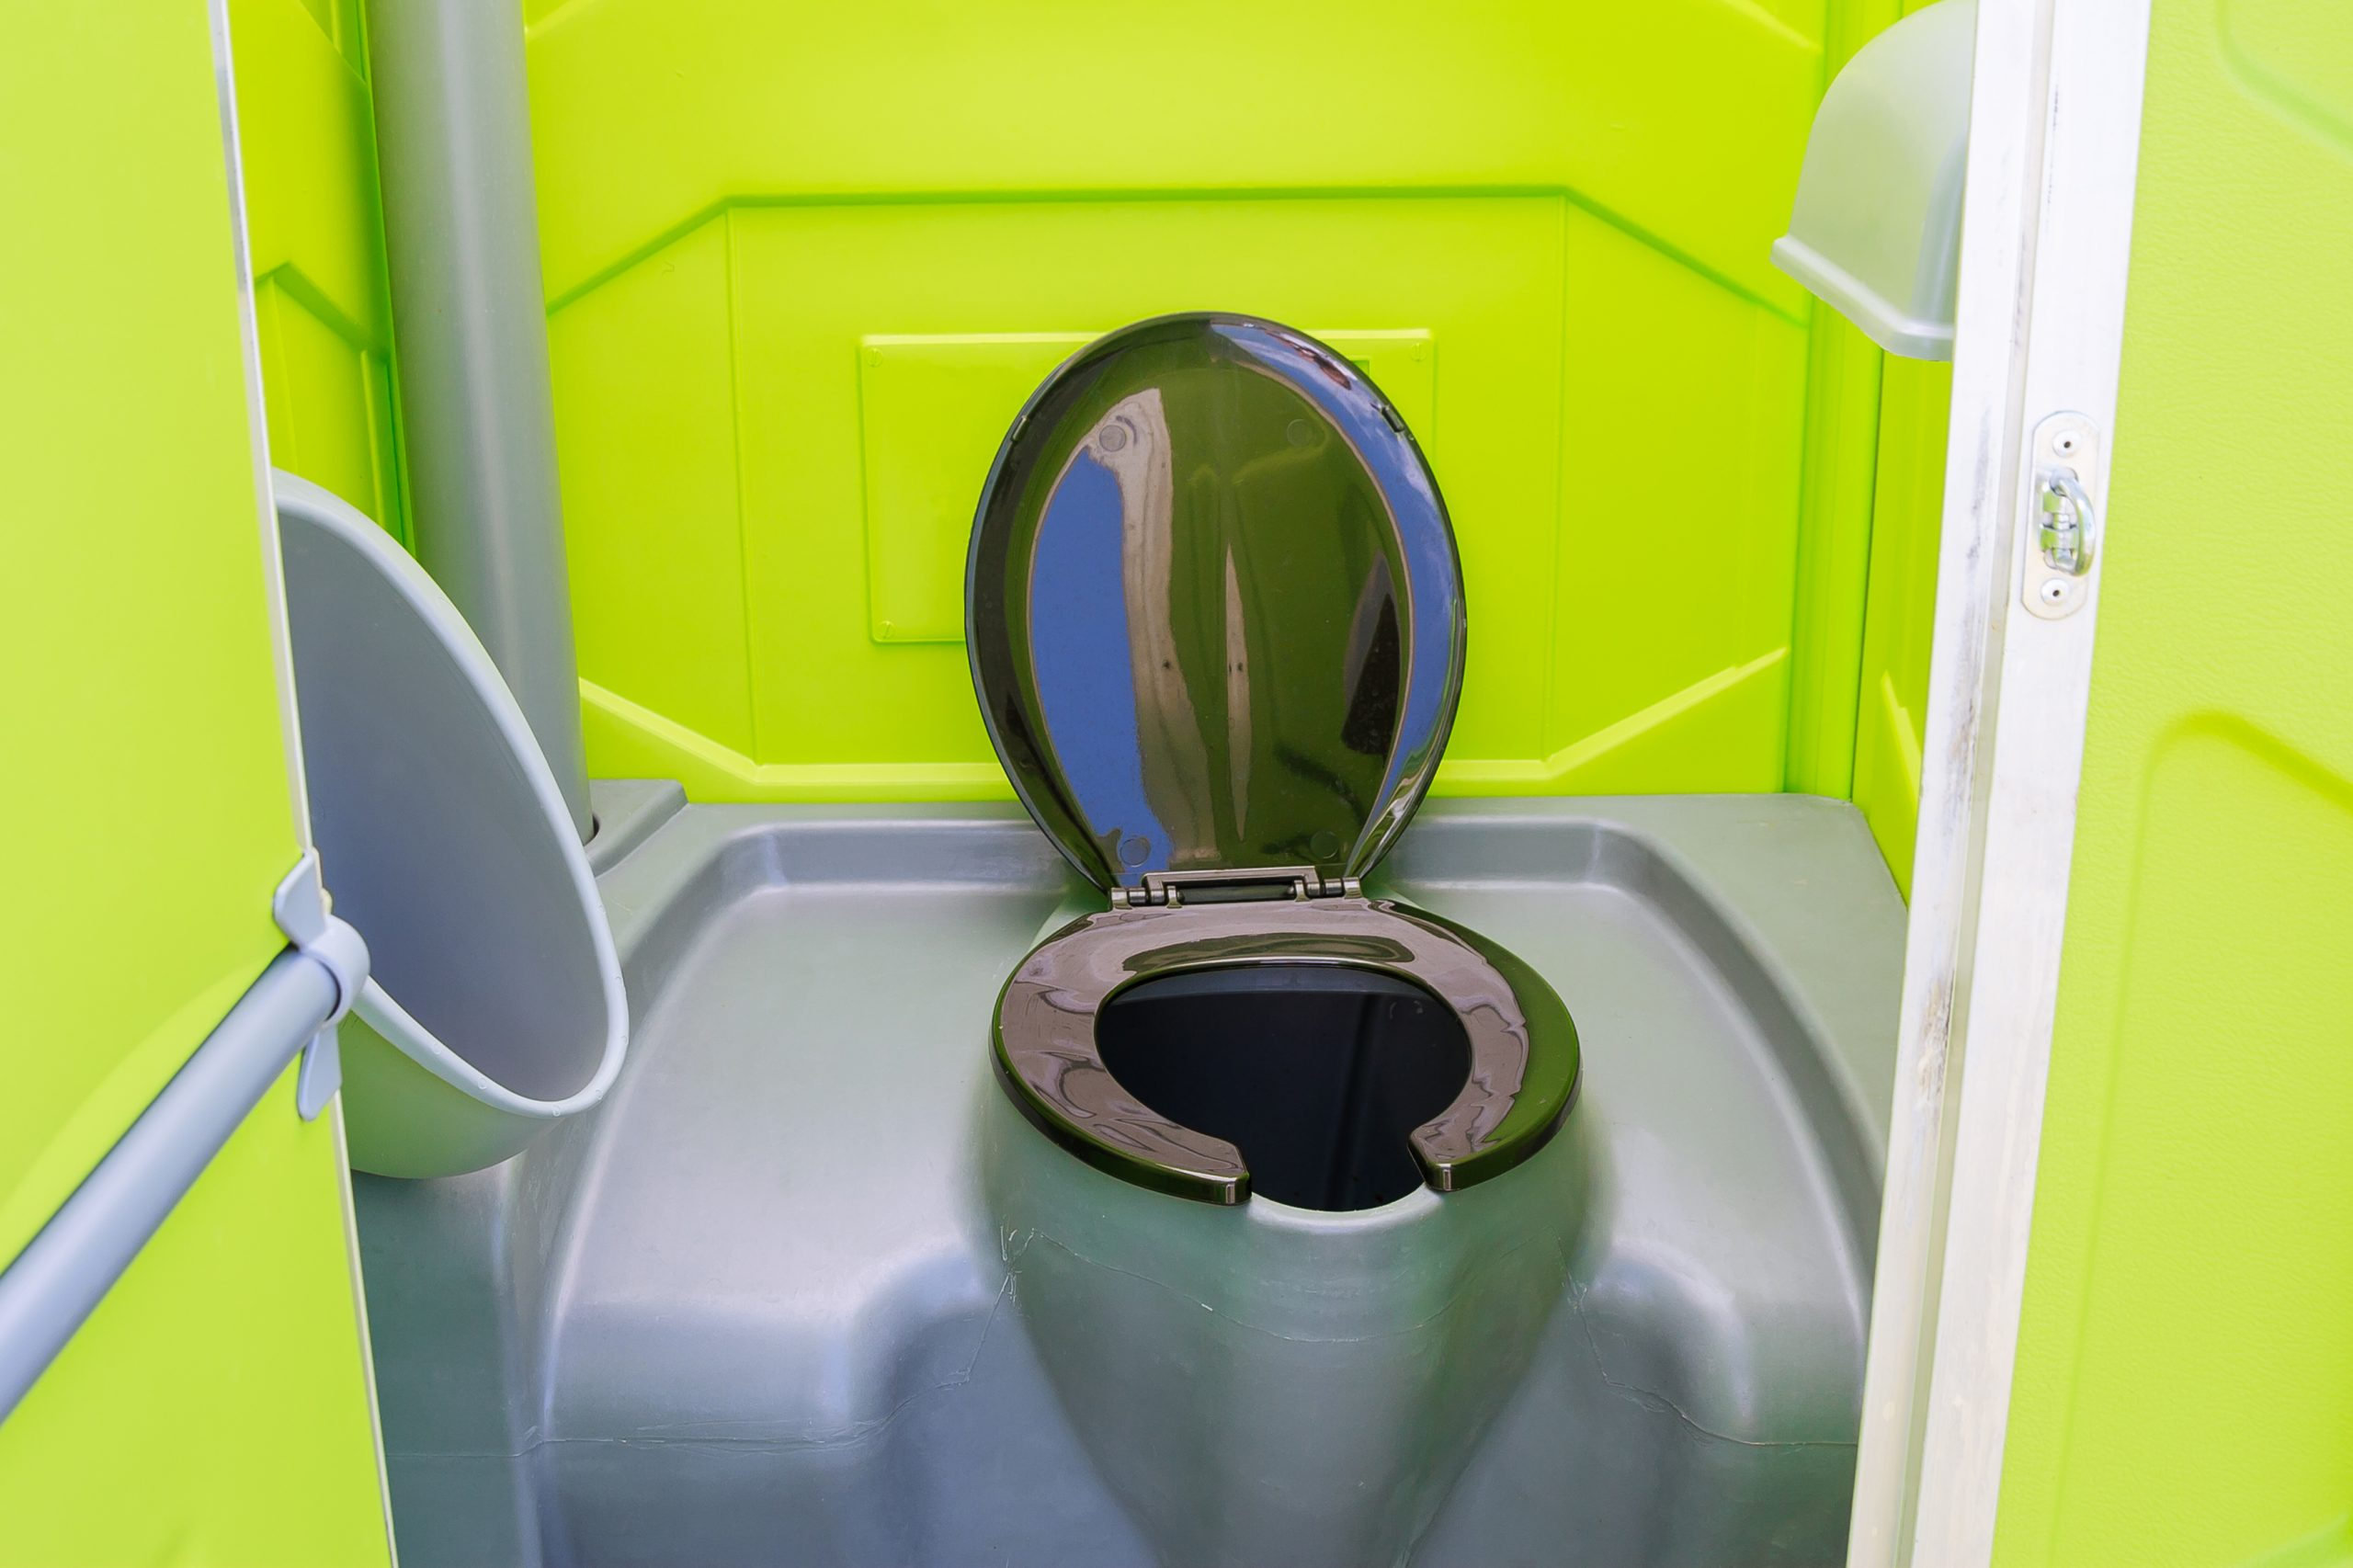 The Best Portable Toilet for Road Trips